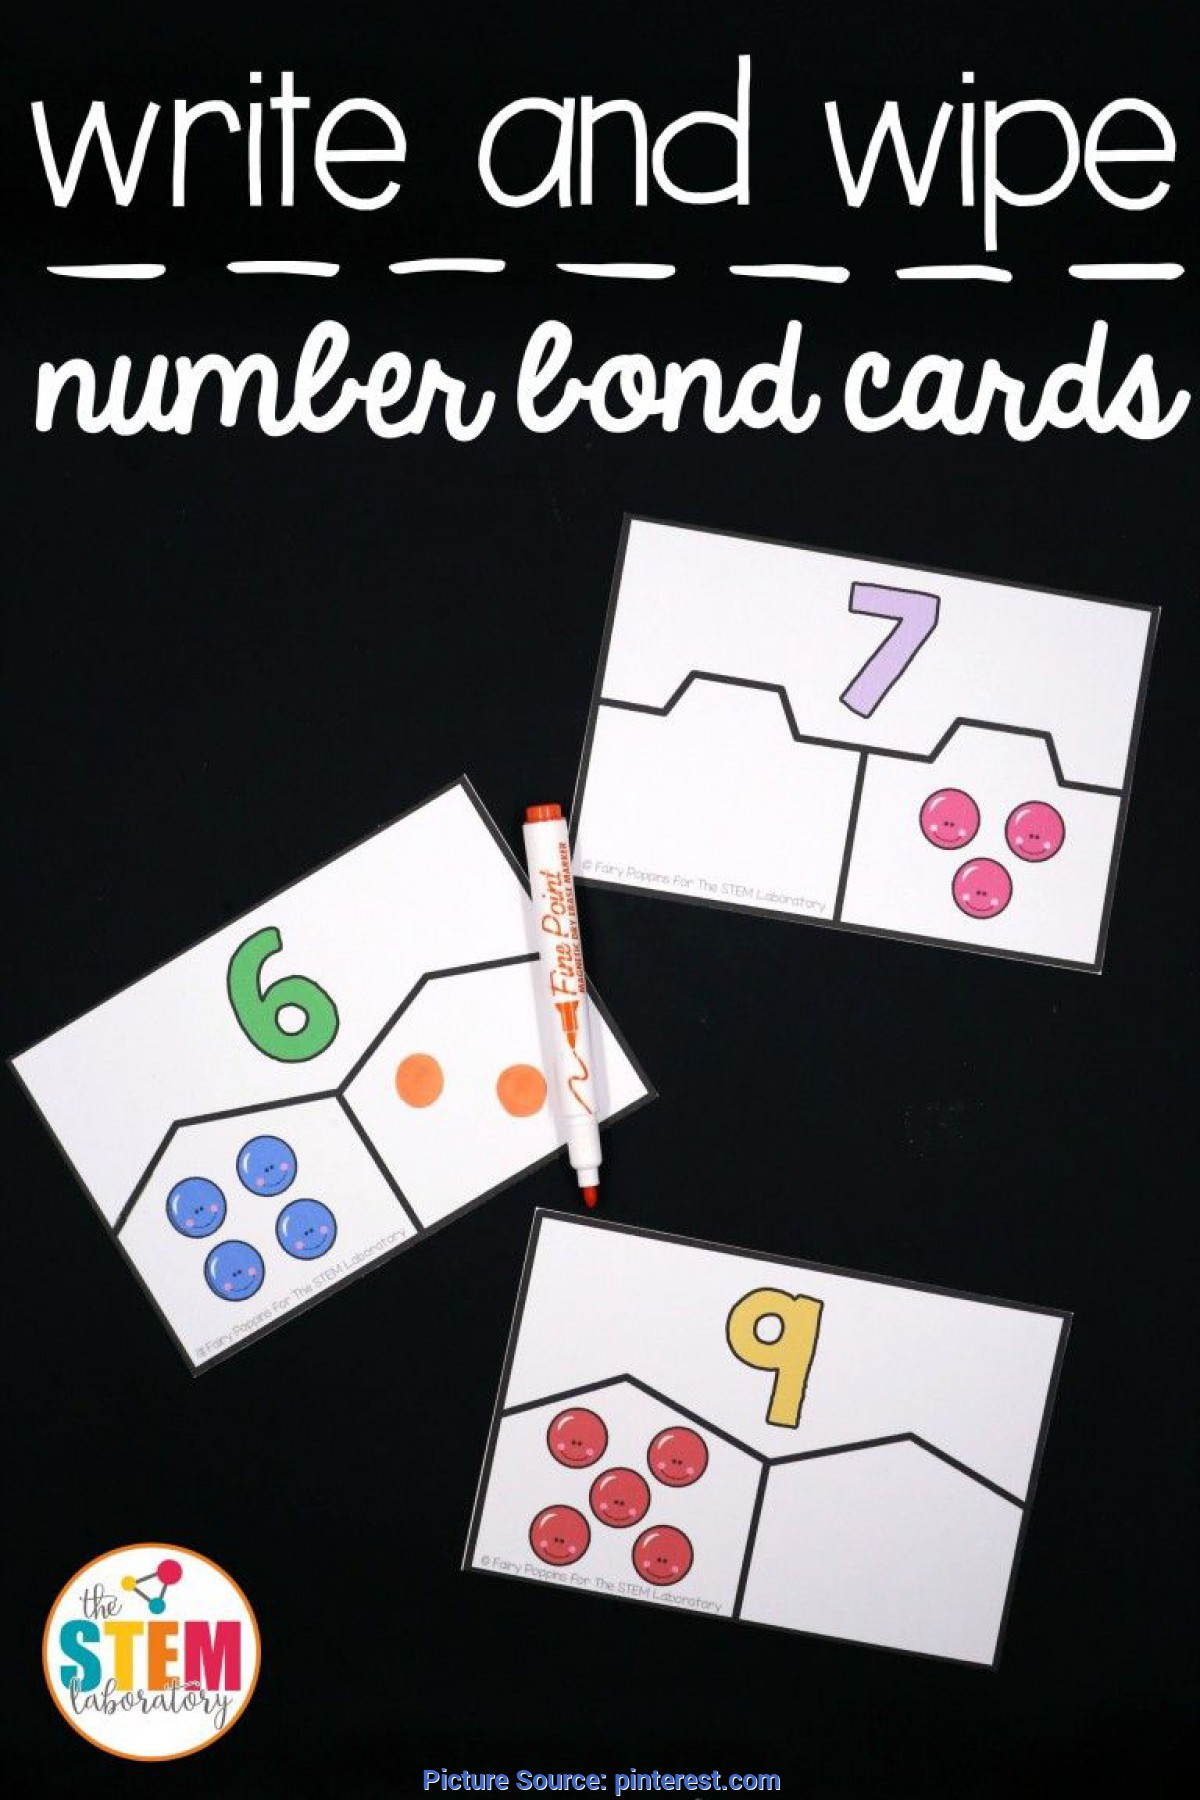 Regular Addition And Subtraction Lesson Plans For Kindergarten Free Write And Wipe Number Bond Cards! Fun Addition An